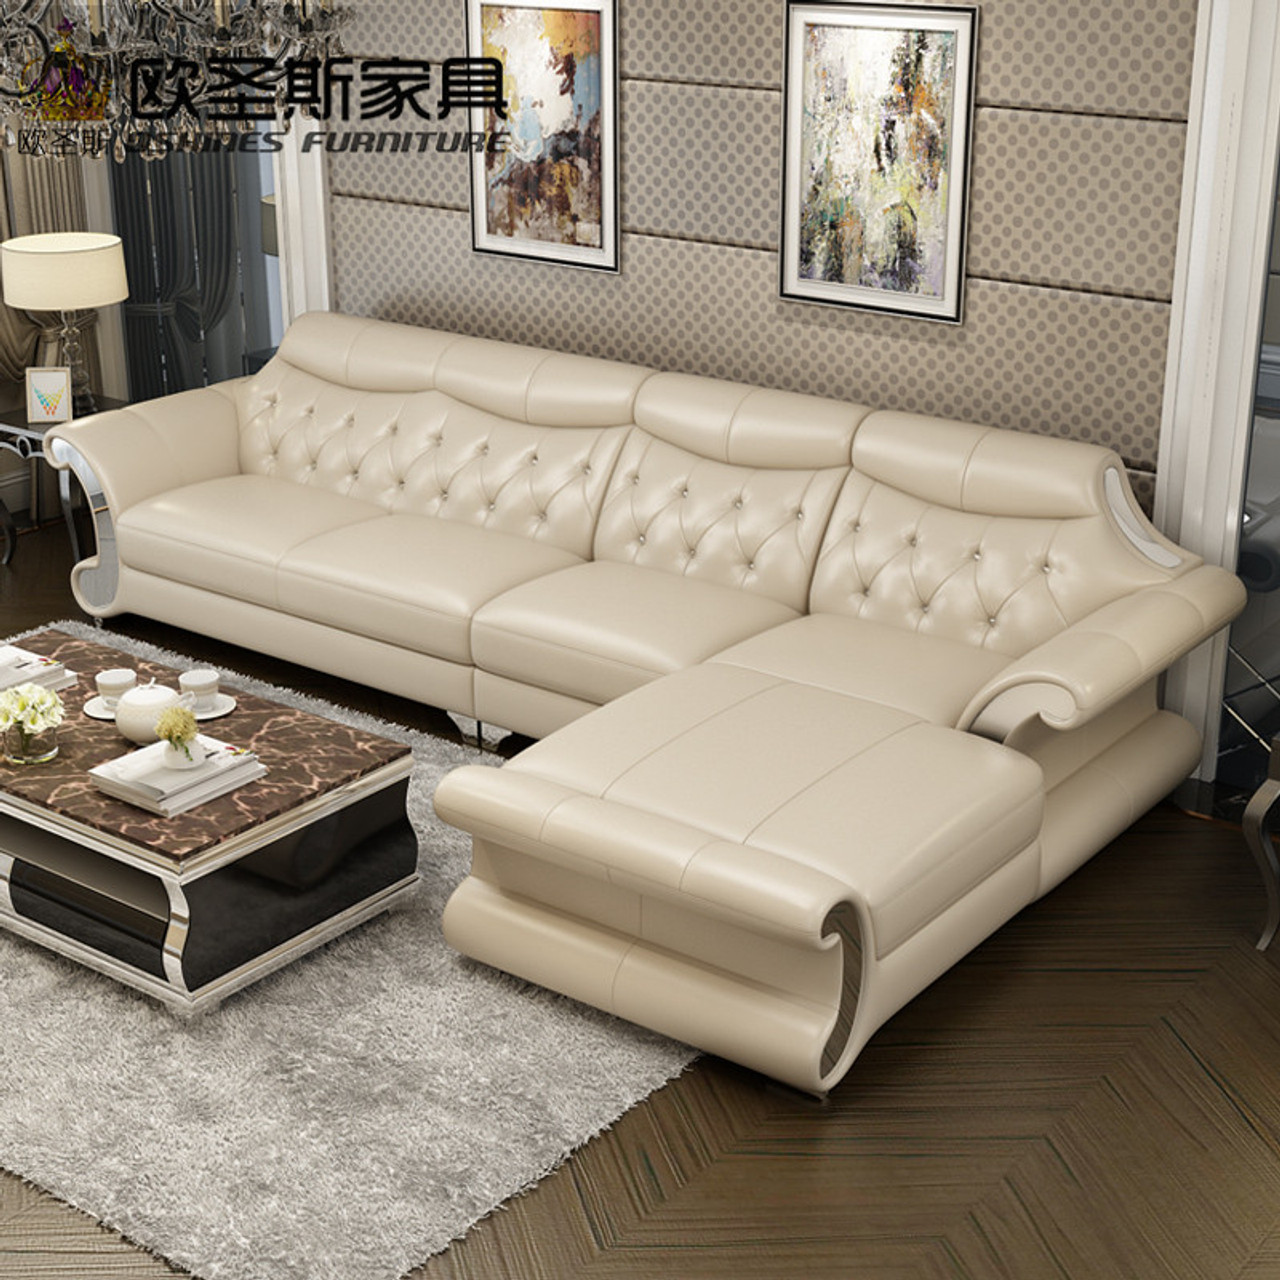 Beautiful Post Modern Bright Colored Sleeper Couch Living